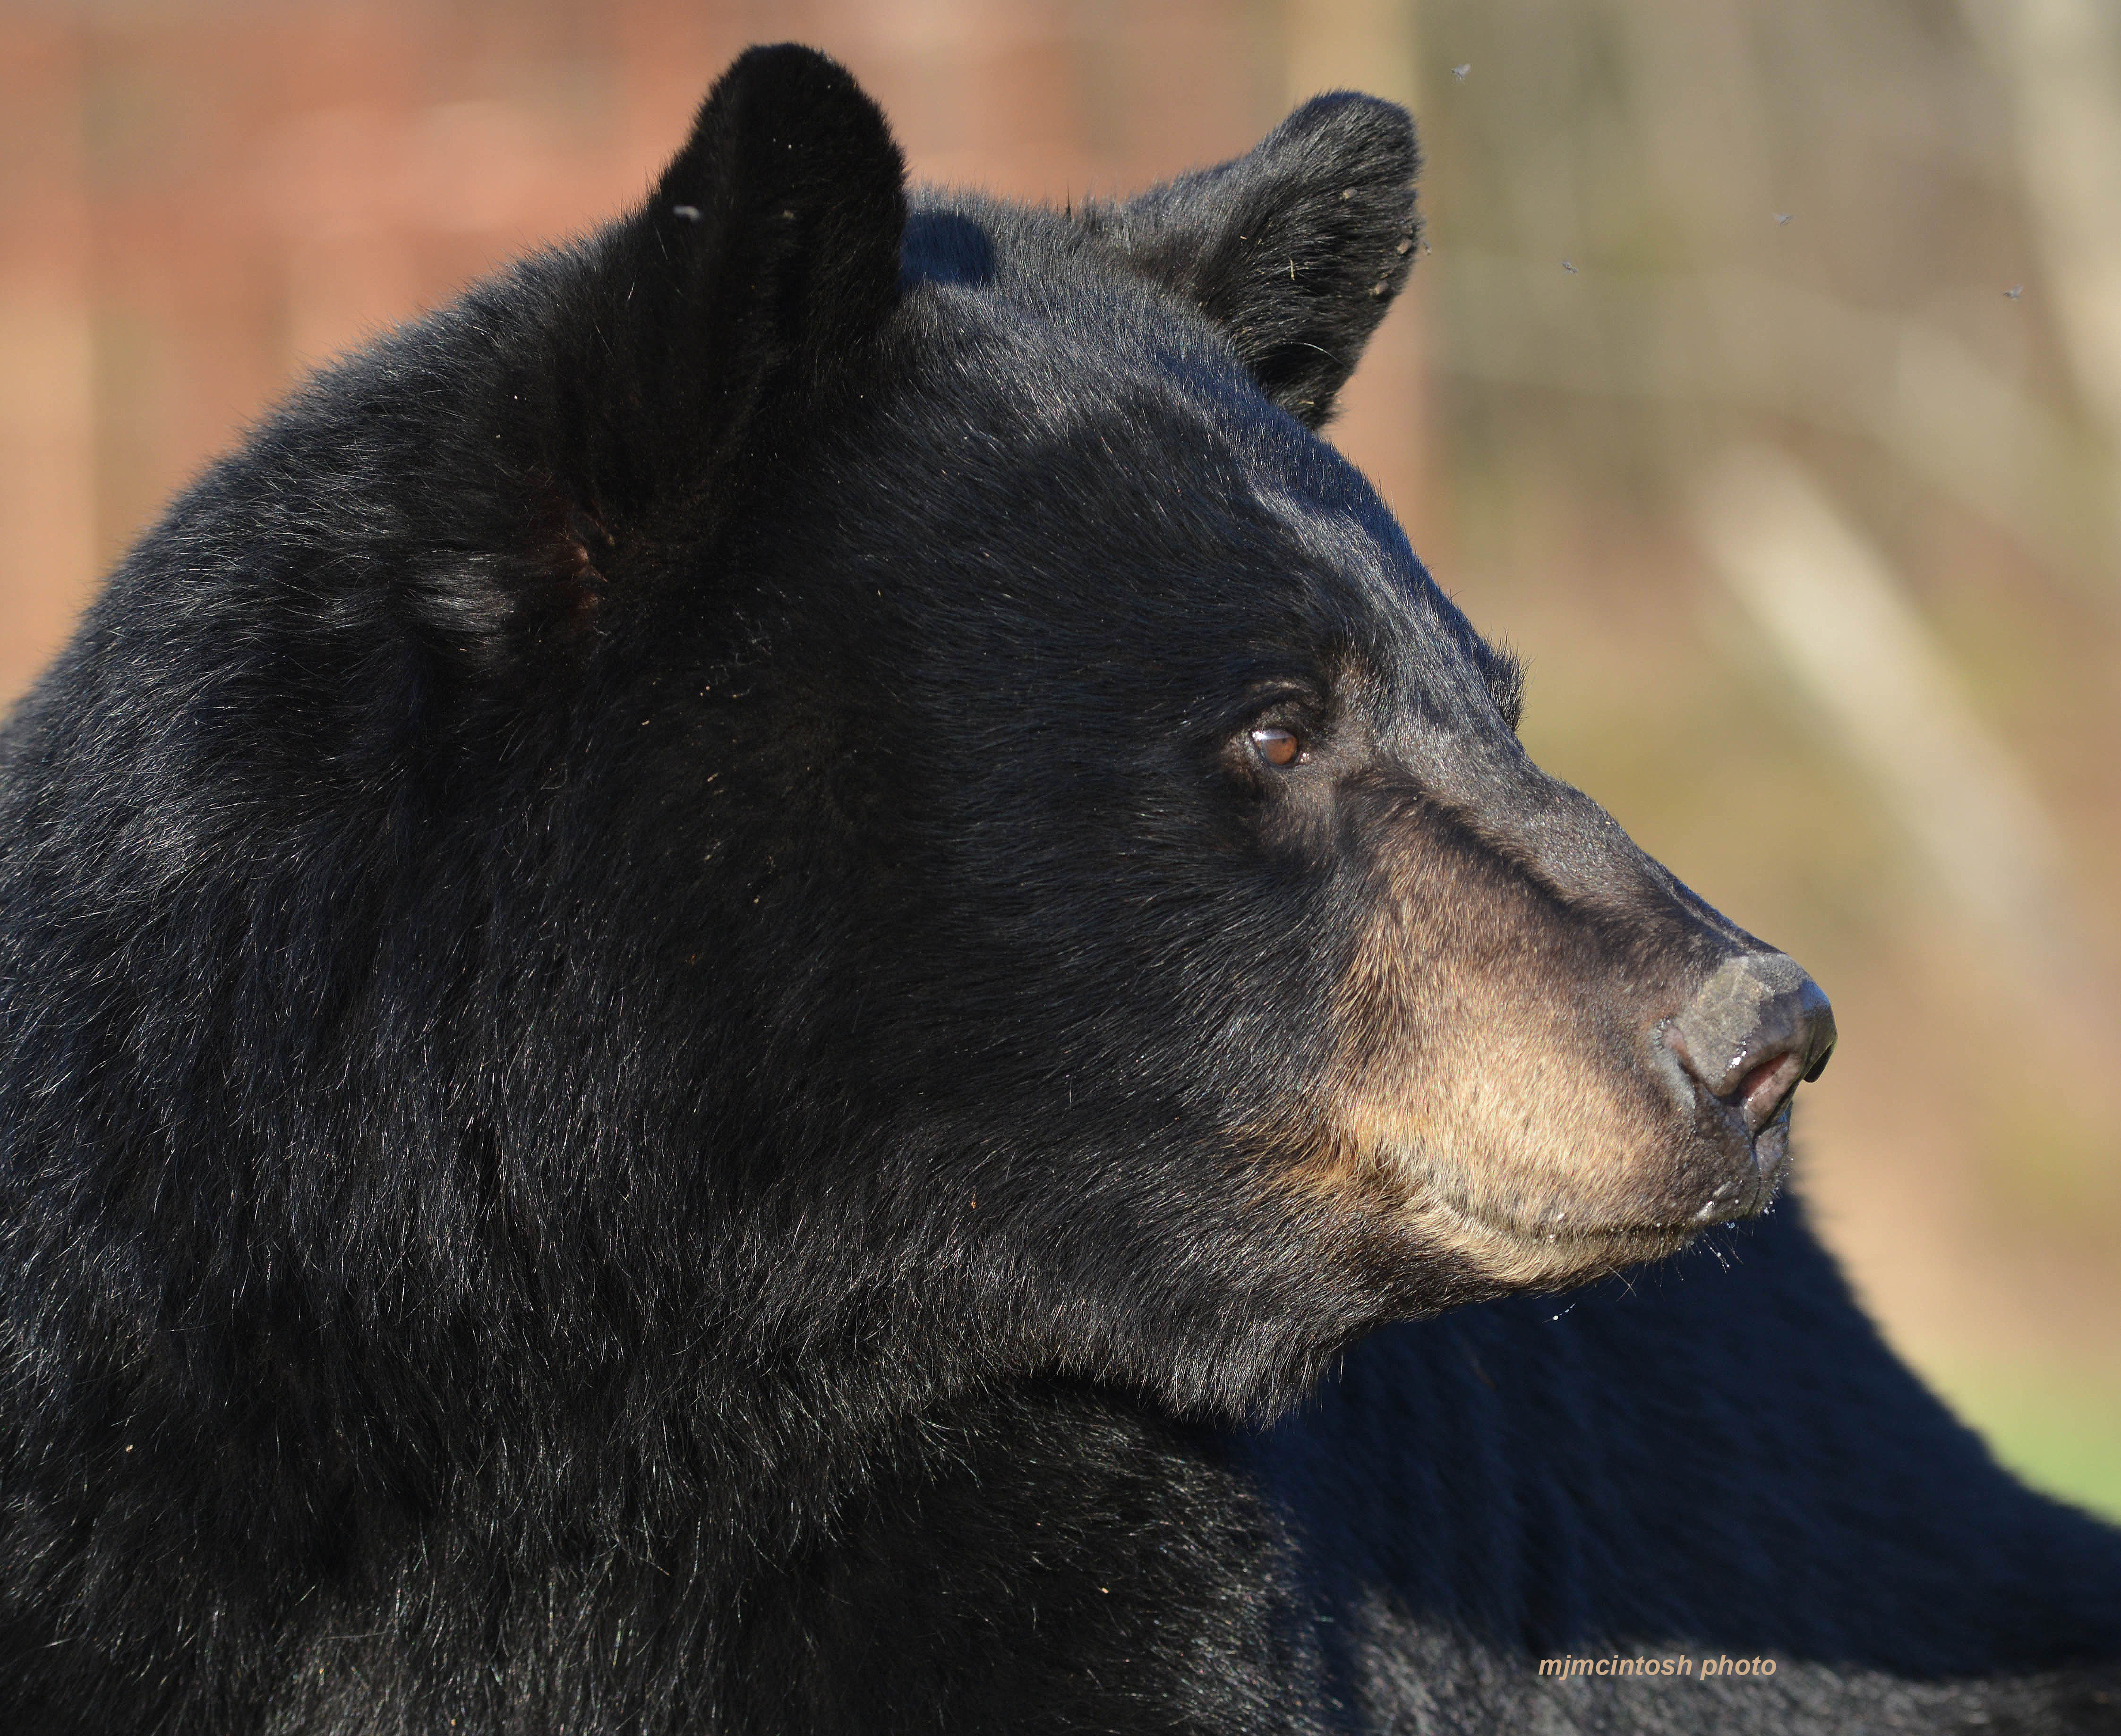 A Bears Quest for Food   Wise About Bears